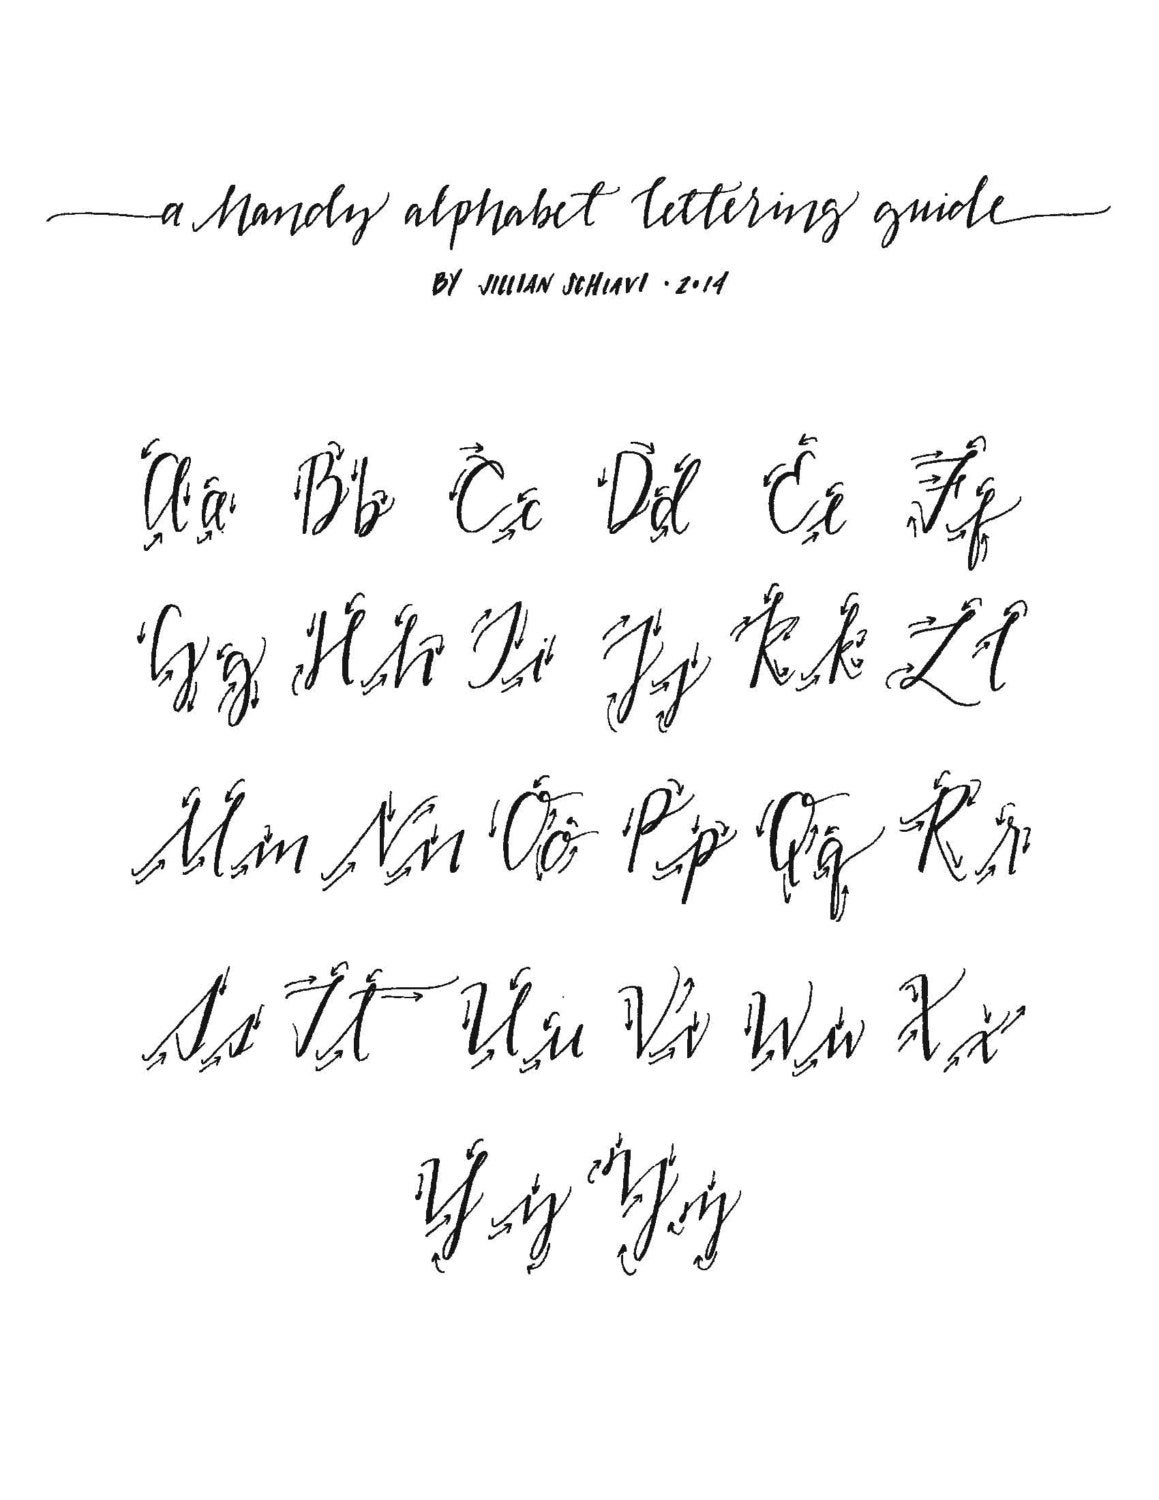 Hand lettering alphabet guide traceable download by jillyink Handwriting calligraphy